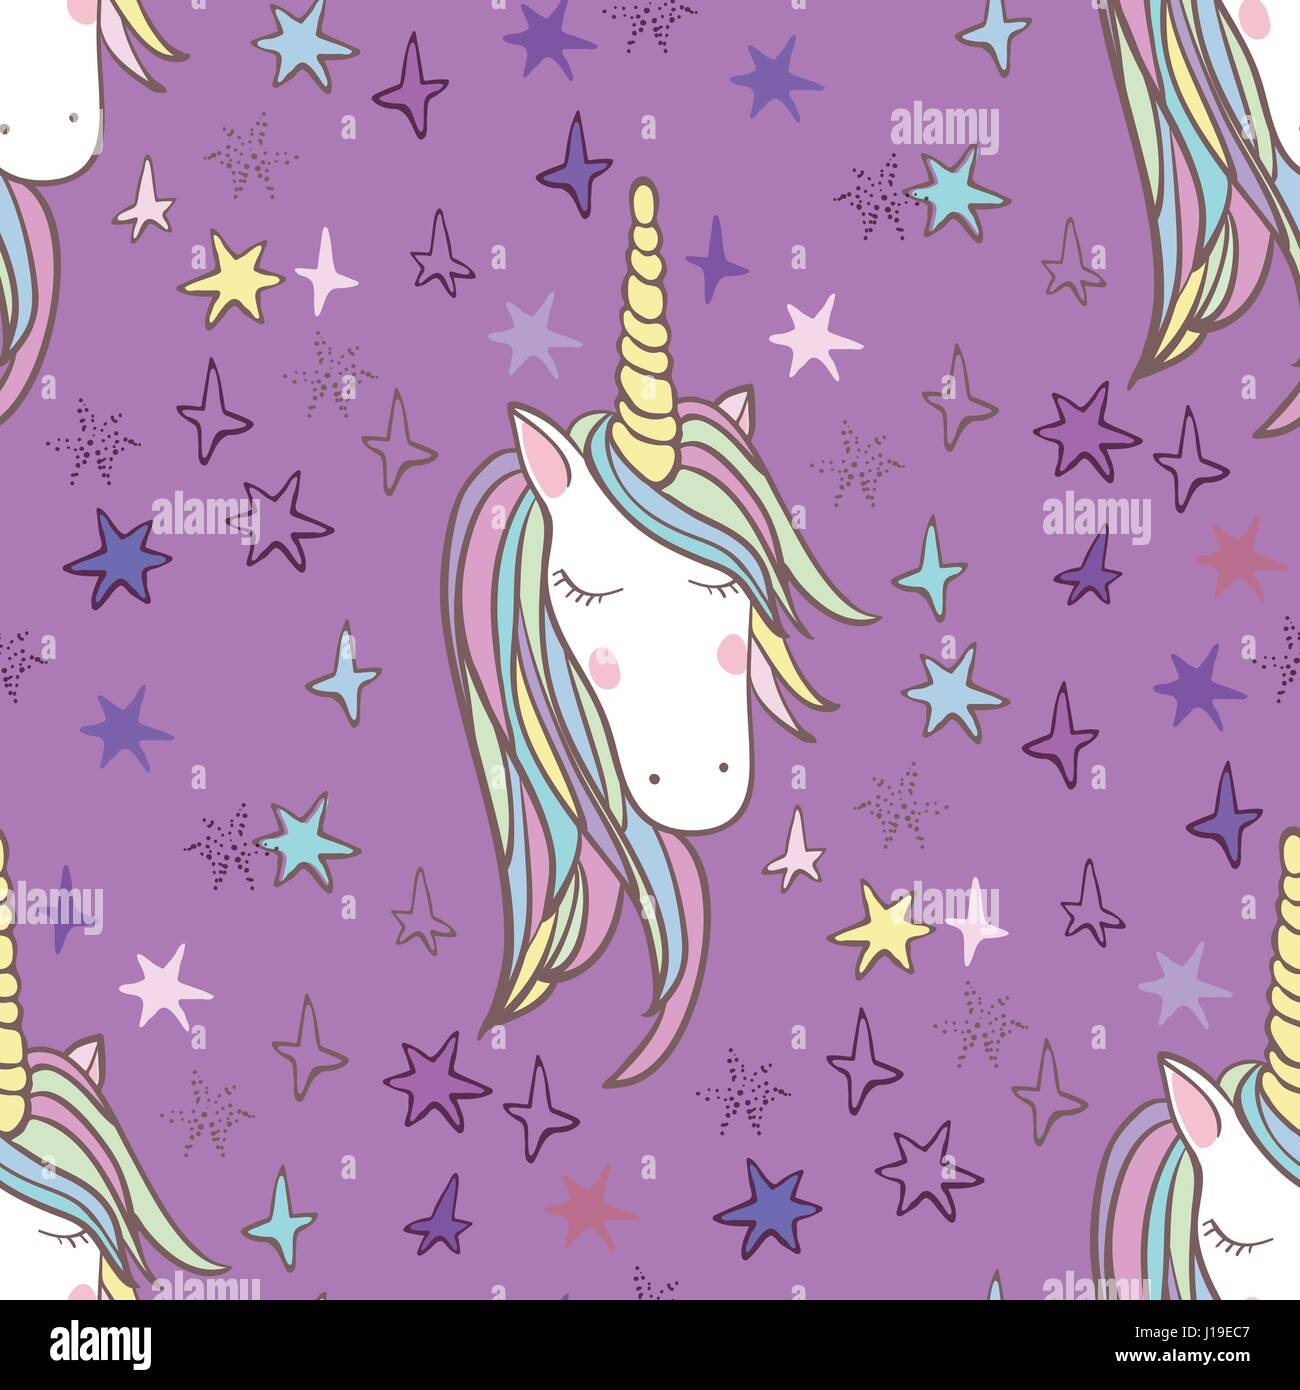 Scrapbook paper books - Unicorn Rainbow Seamless Pattern Girls Scrapbook Paper Perfect For Wrapping Presents Scrapbook Pages Cards Party Decorations Book Journal Cover